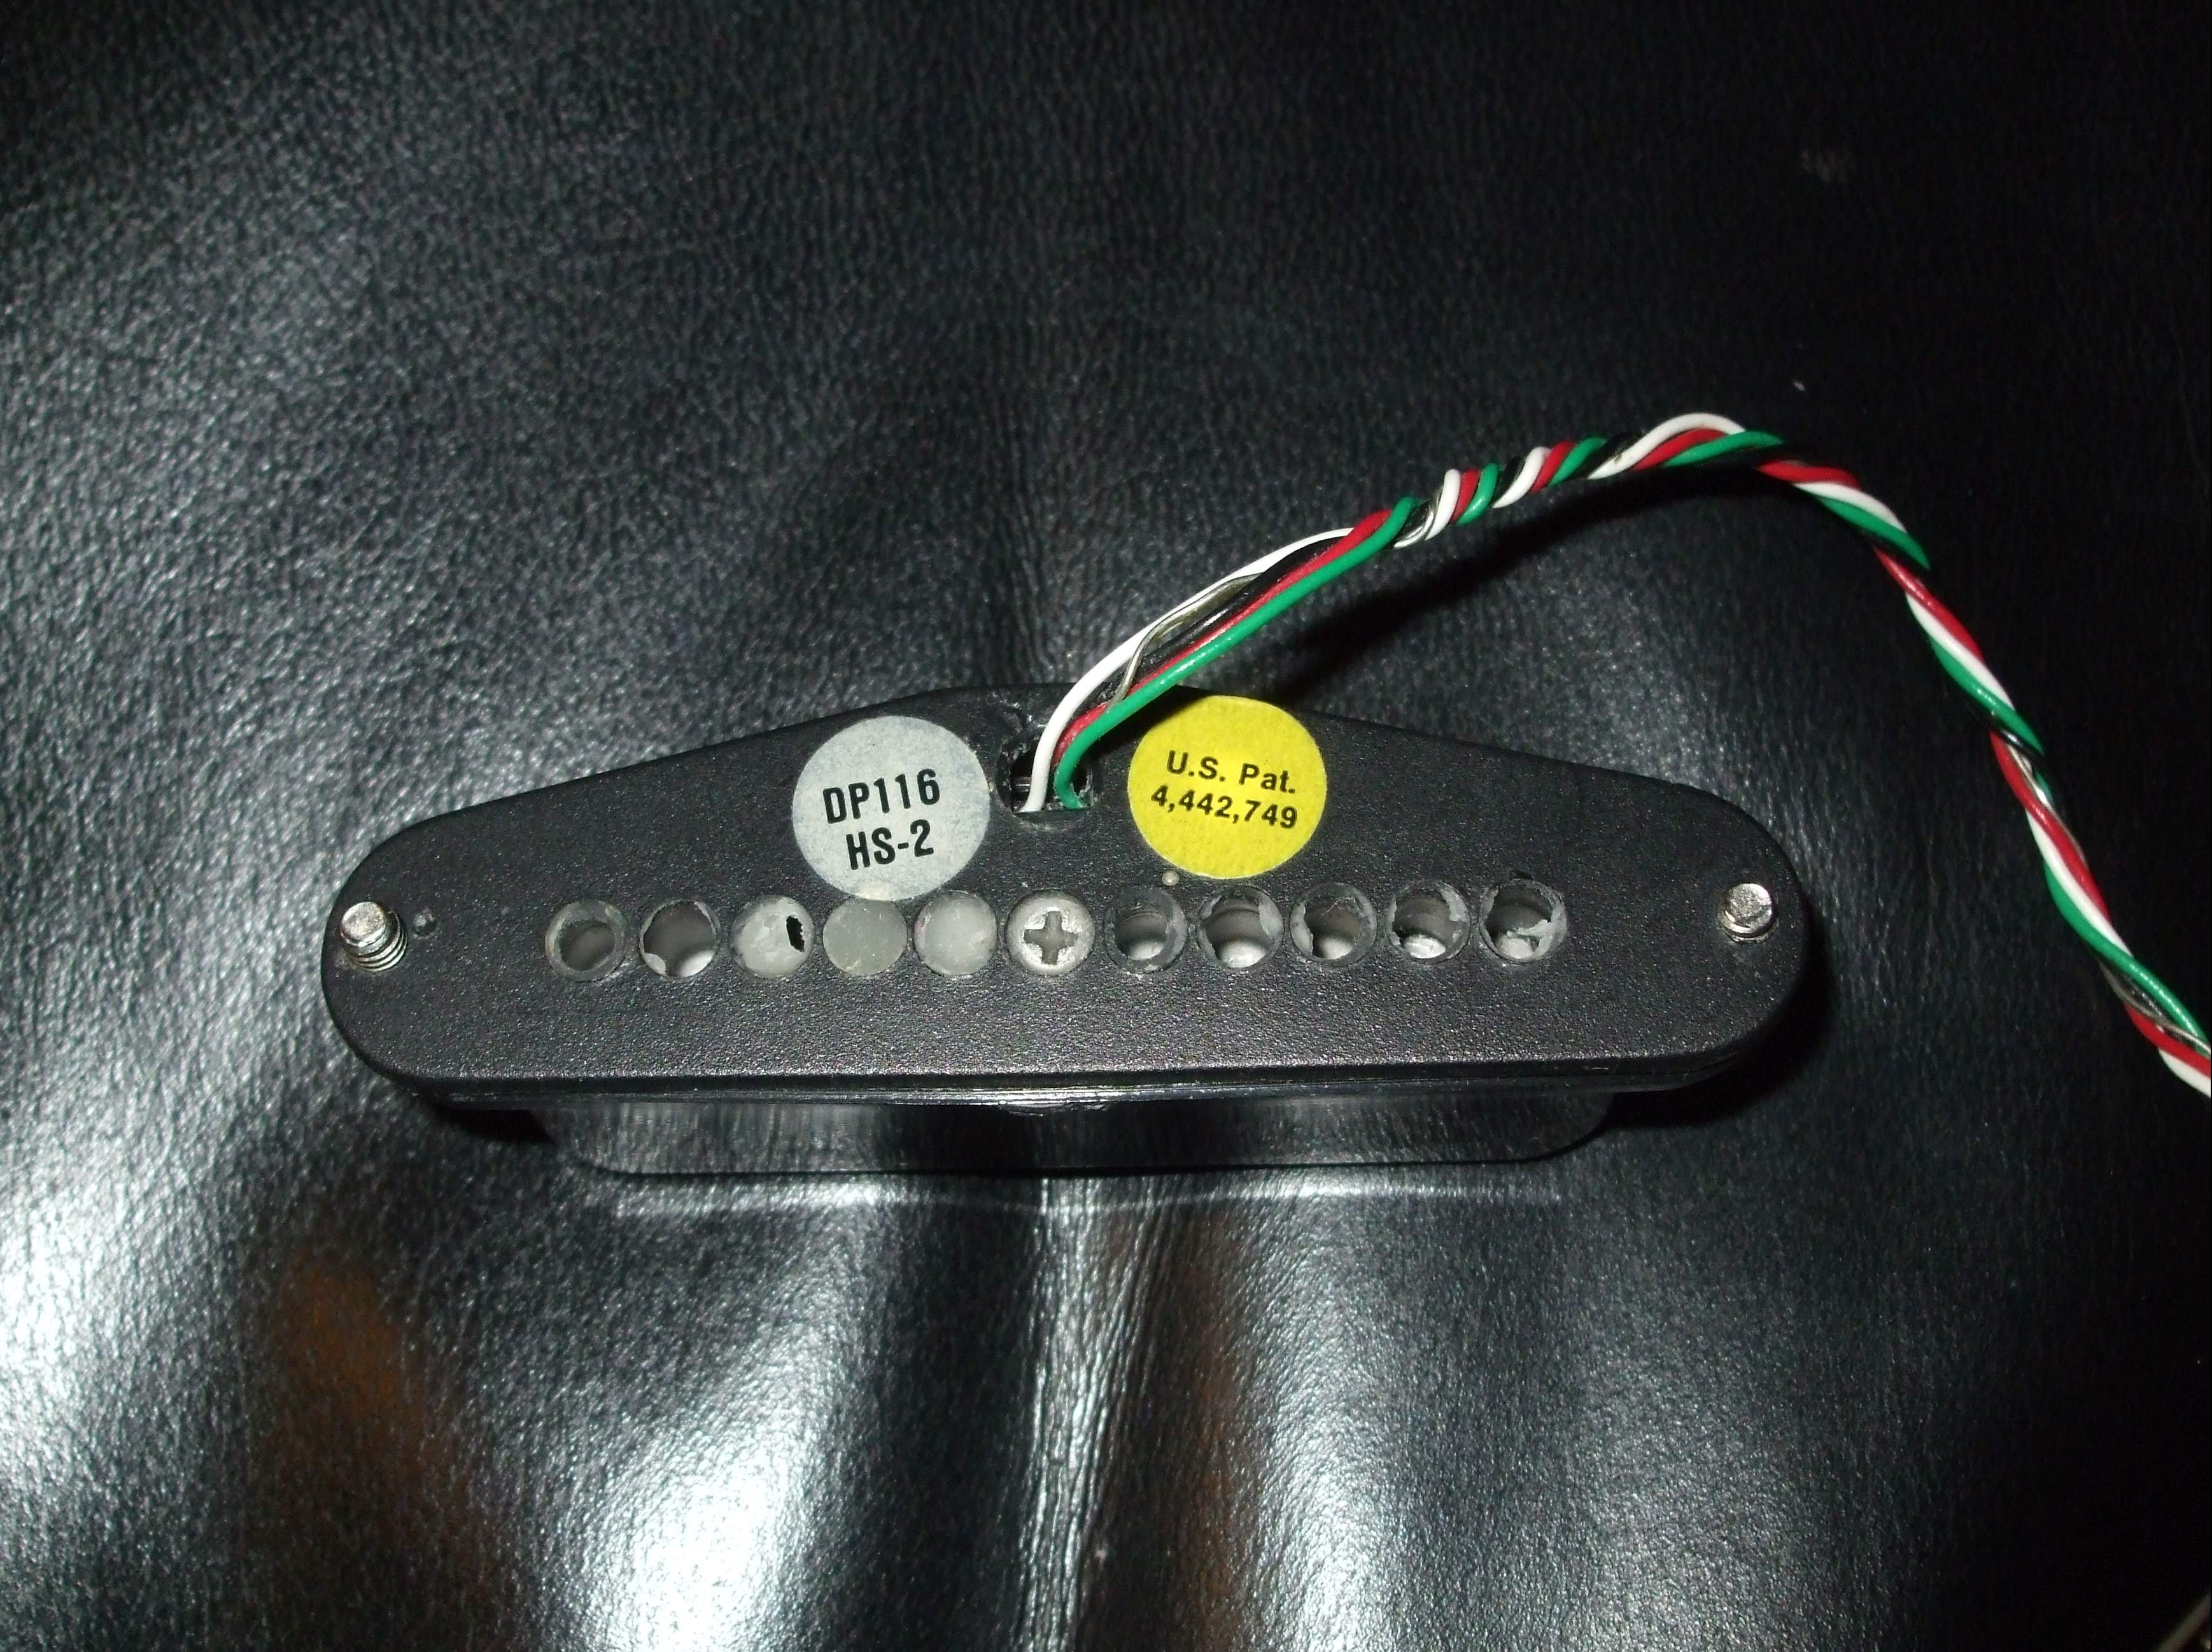 Cute Two Humbuckers 5 Way Switch Huge Hh 5 Way Switch Wiring Square Gretsch Wiring Harness Solar Panel Diagram Youthful Solar Panel Wiring Guide BrownSolar Panel Diagrams DiMarzio DP116 HS 2 Image (#800757)   Audiofanzine